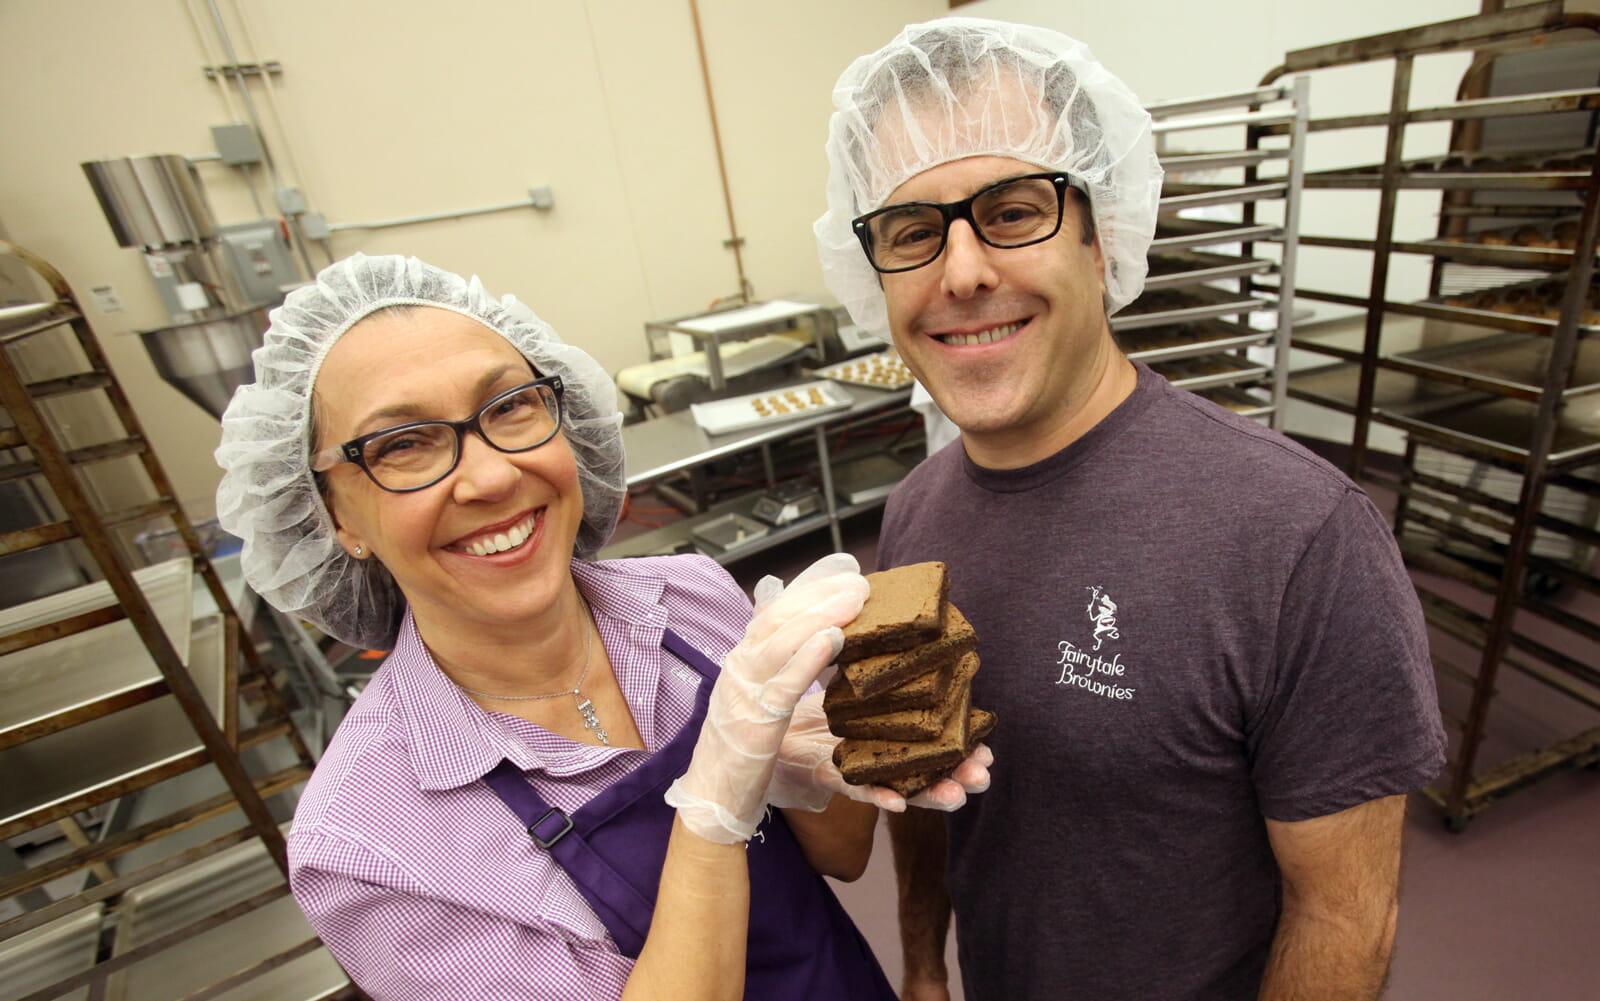 David and Eileen in the bakery